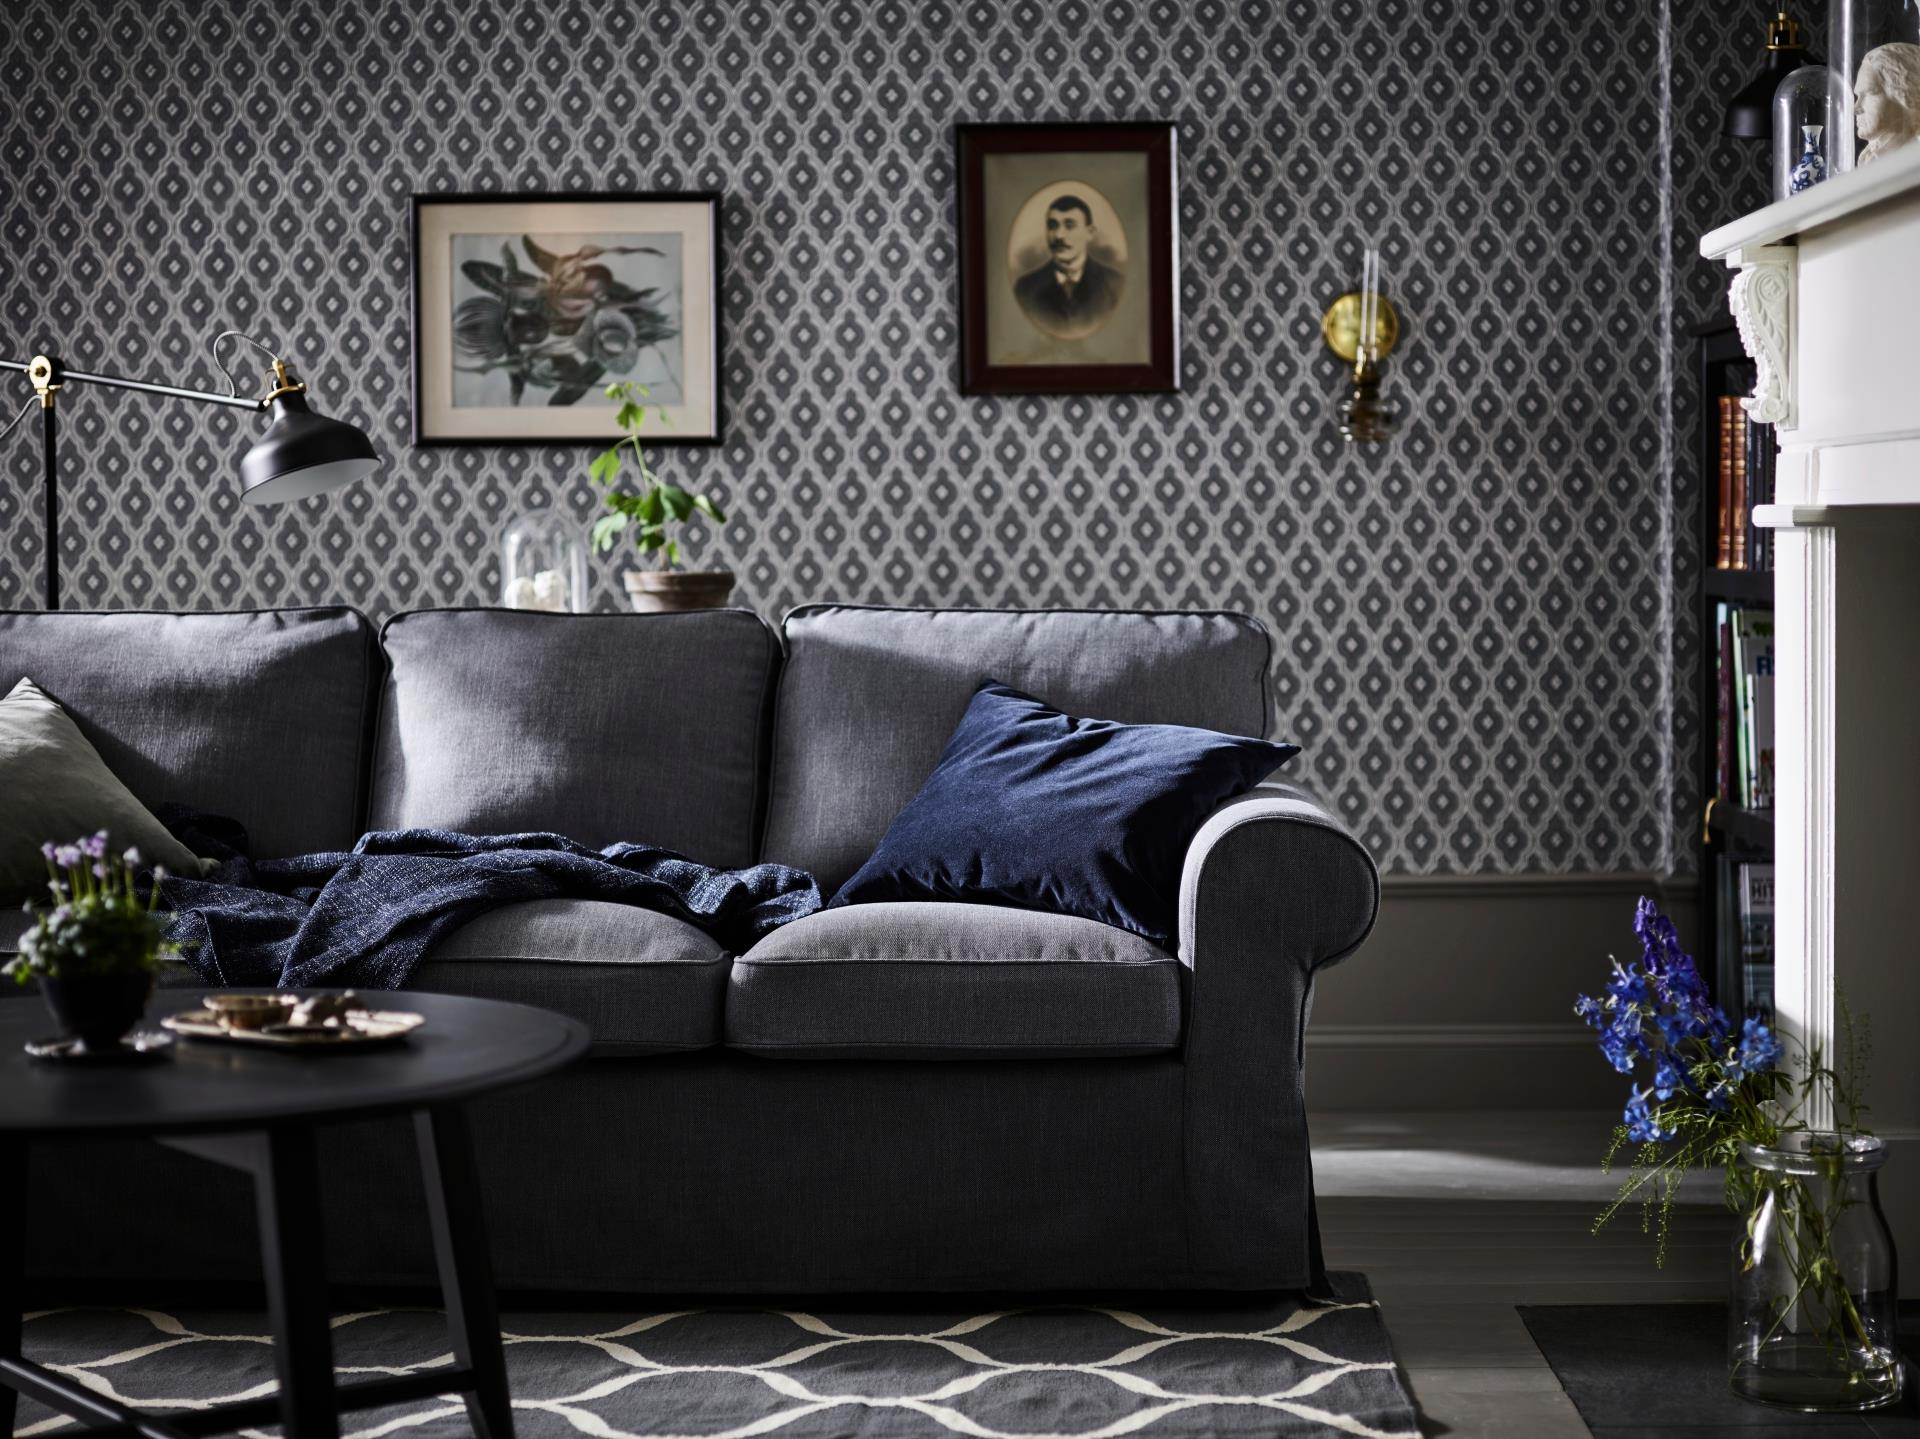 Ikea divani catalogo 2018 for Catalogo ikea on line